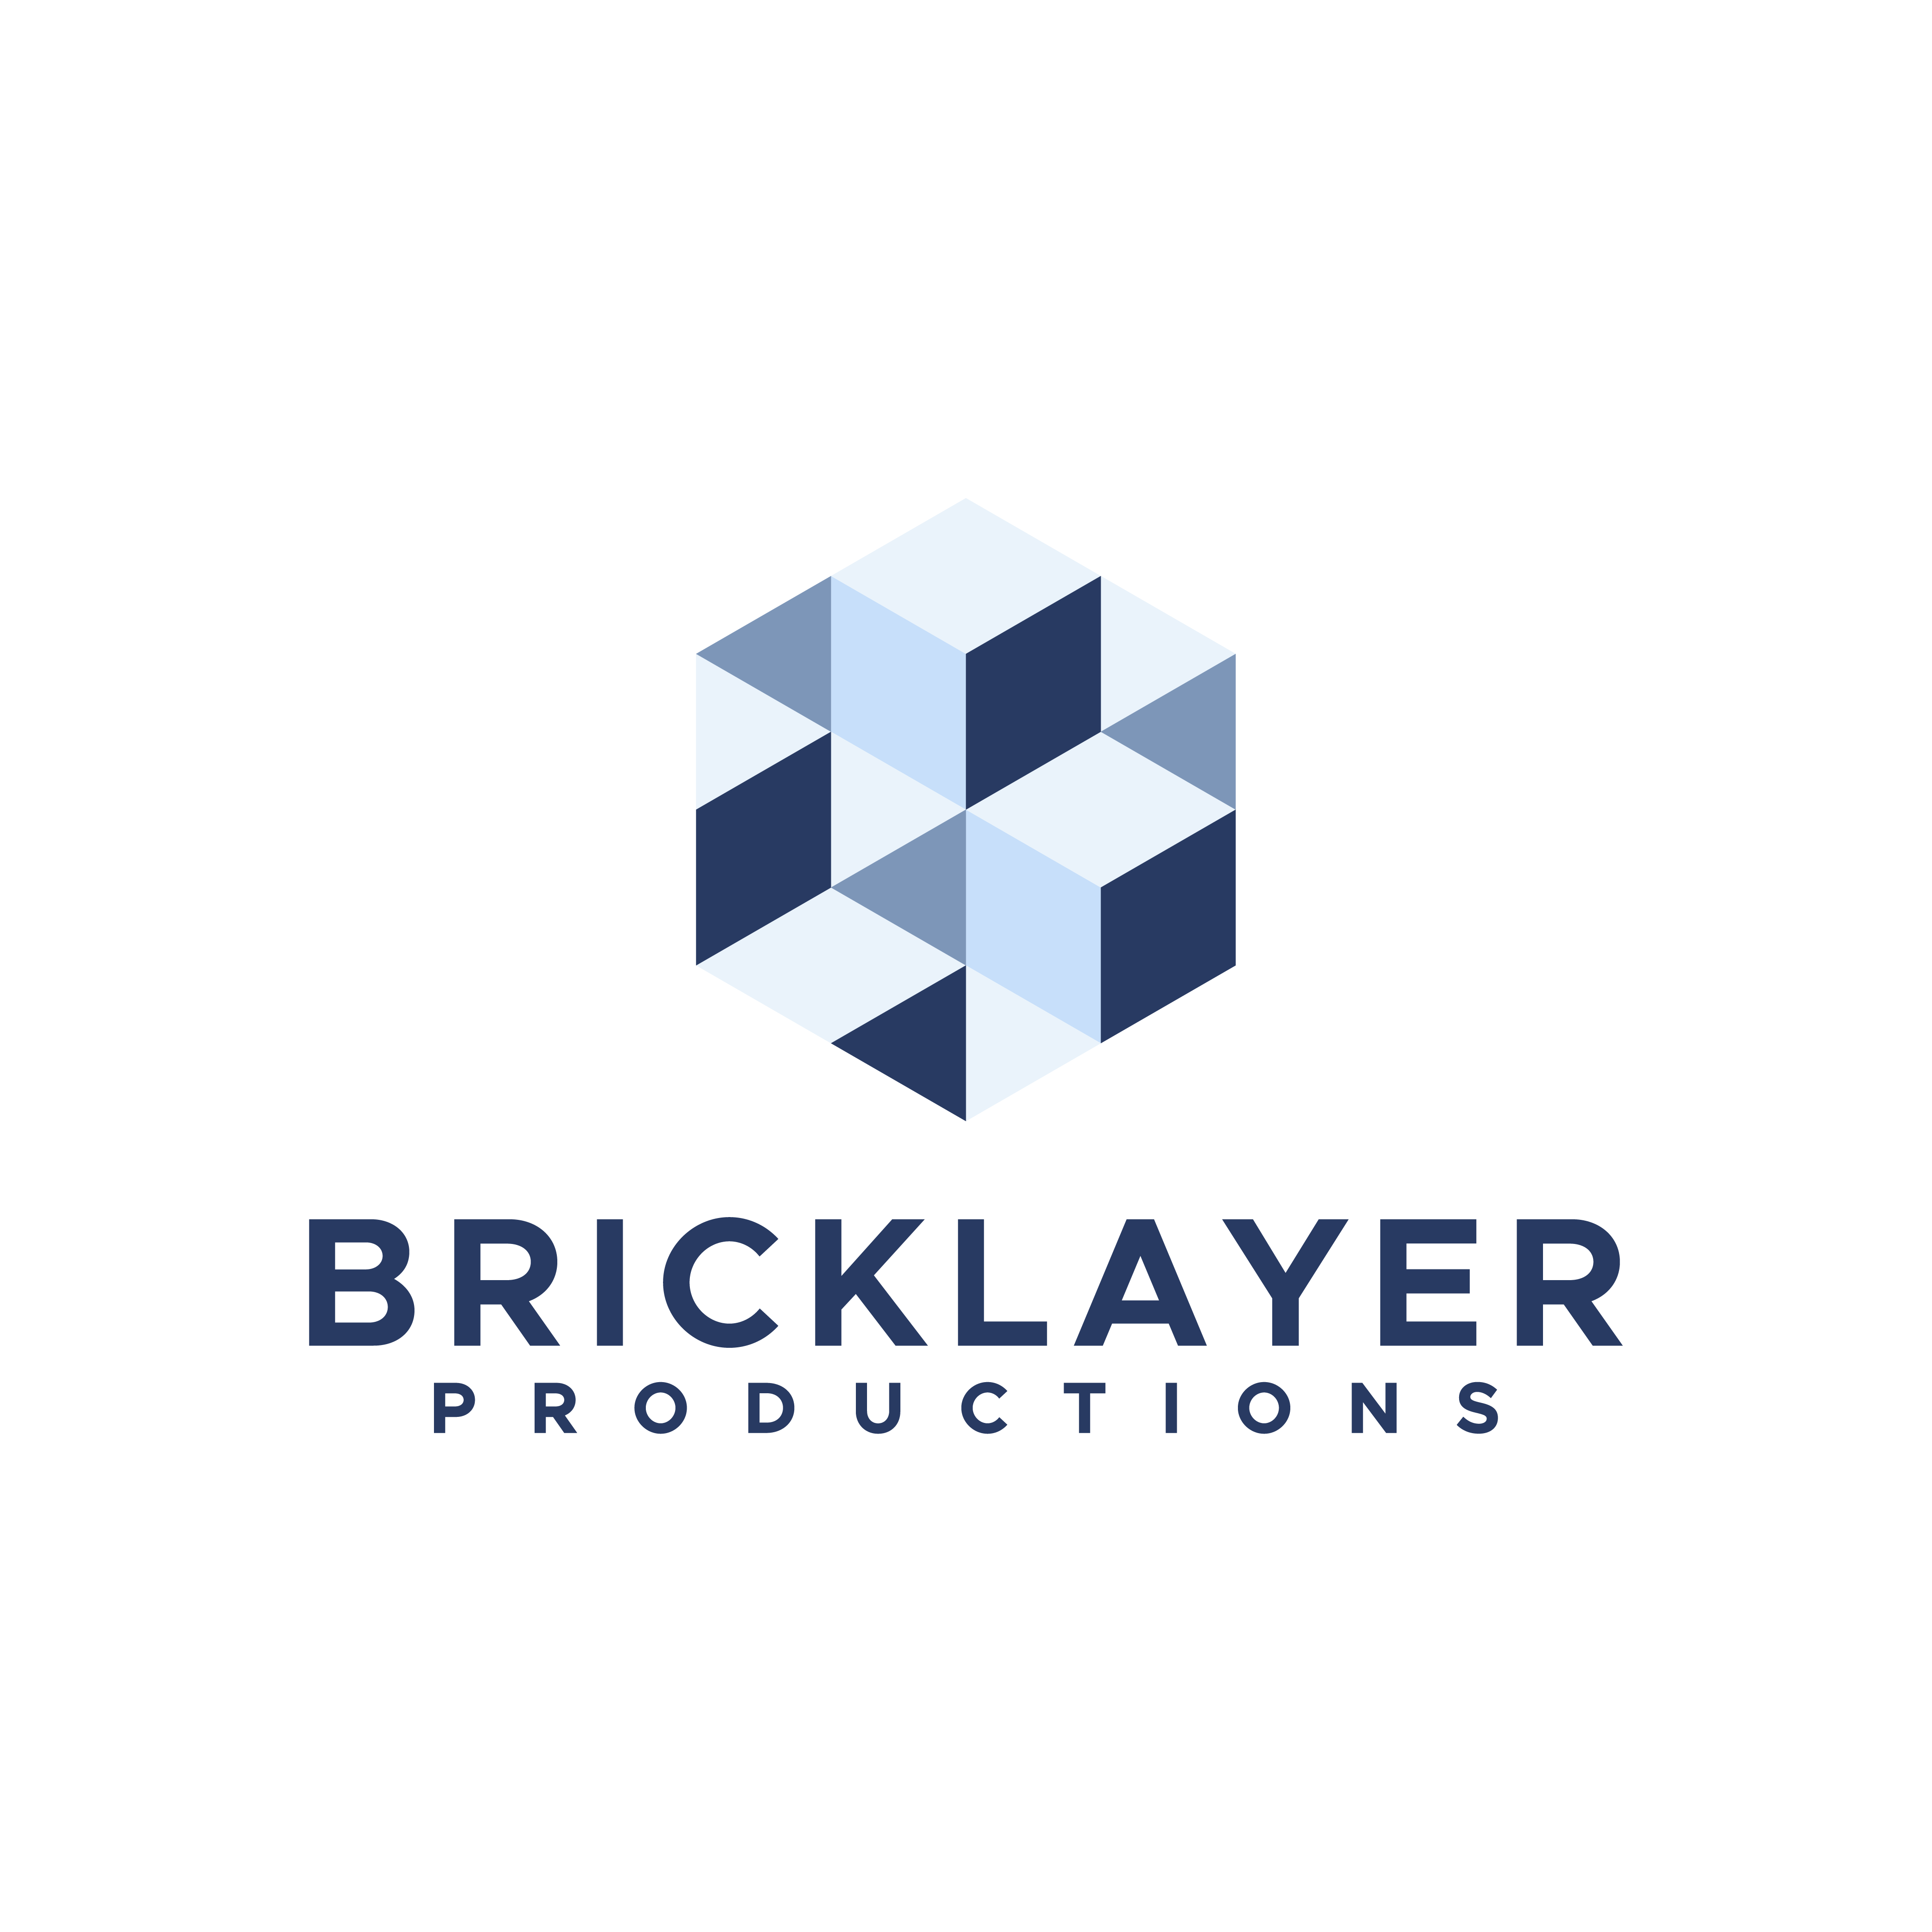 Bricklayer Productions